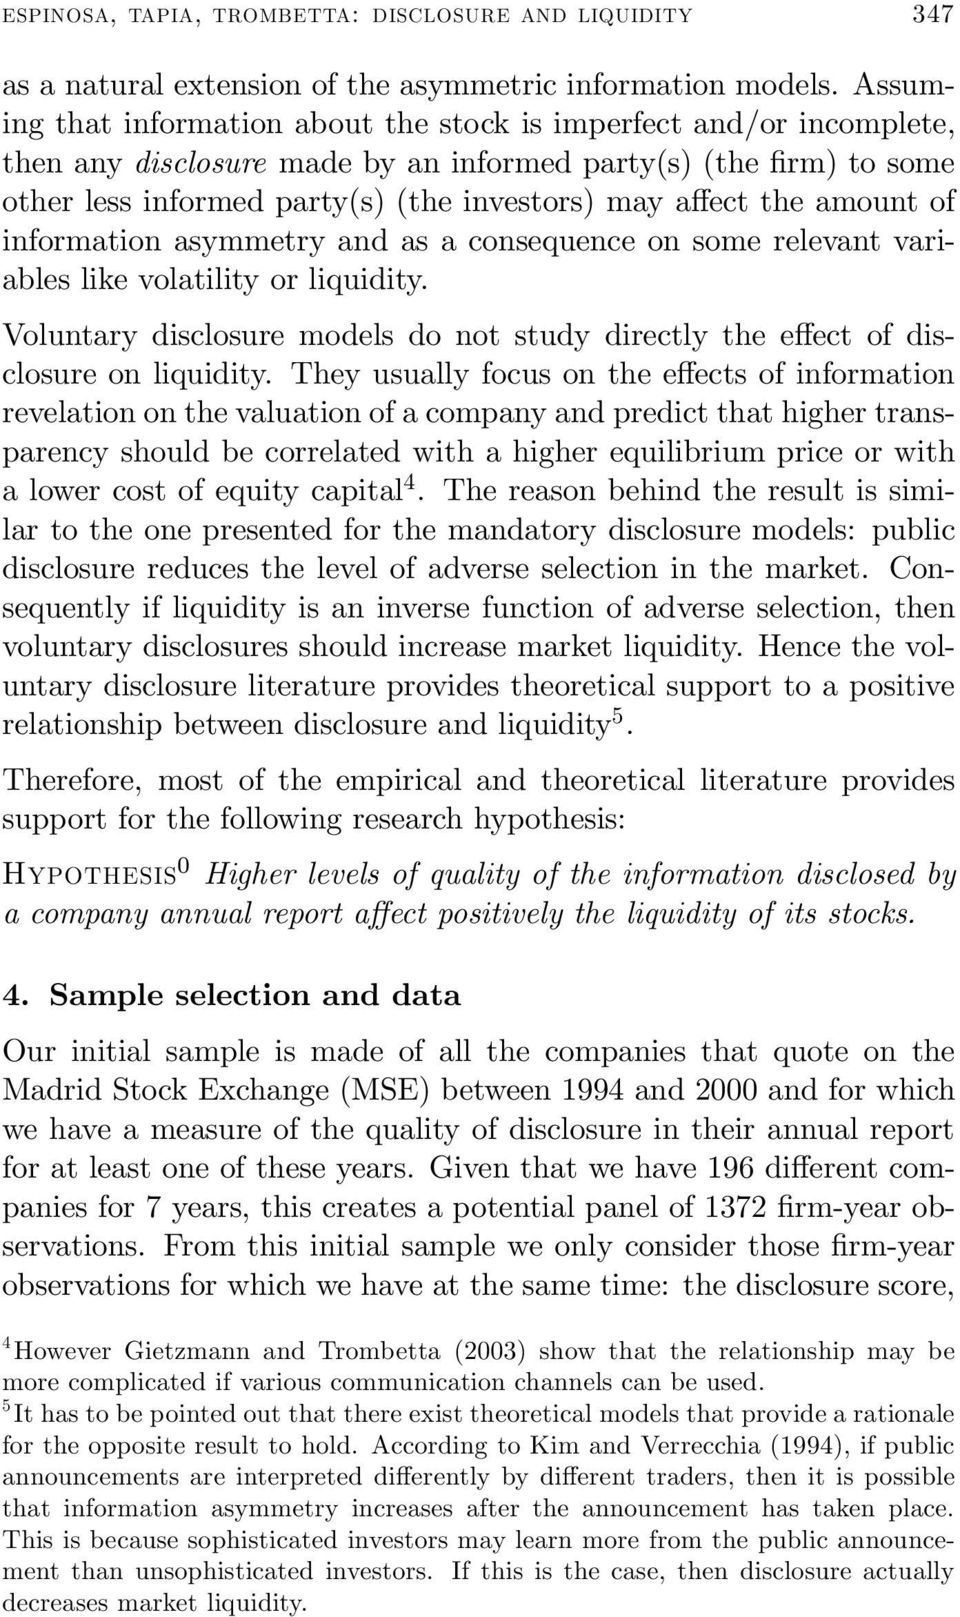 the amount of information asymmetry and as a consequence on some relevant variables like volatility or liquidity.